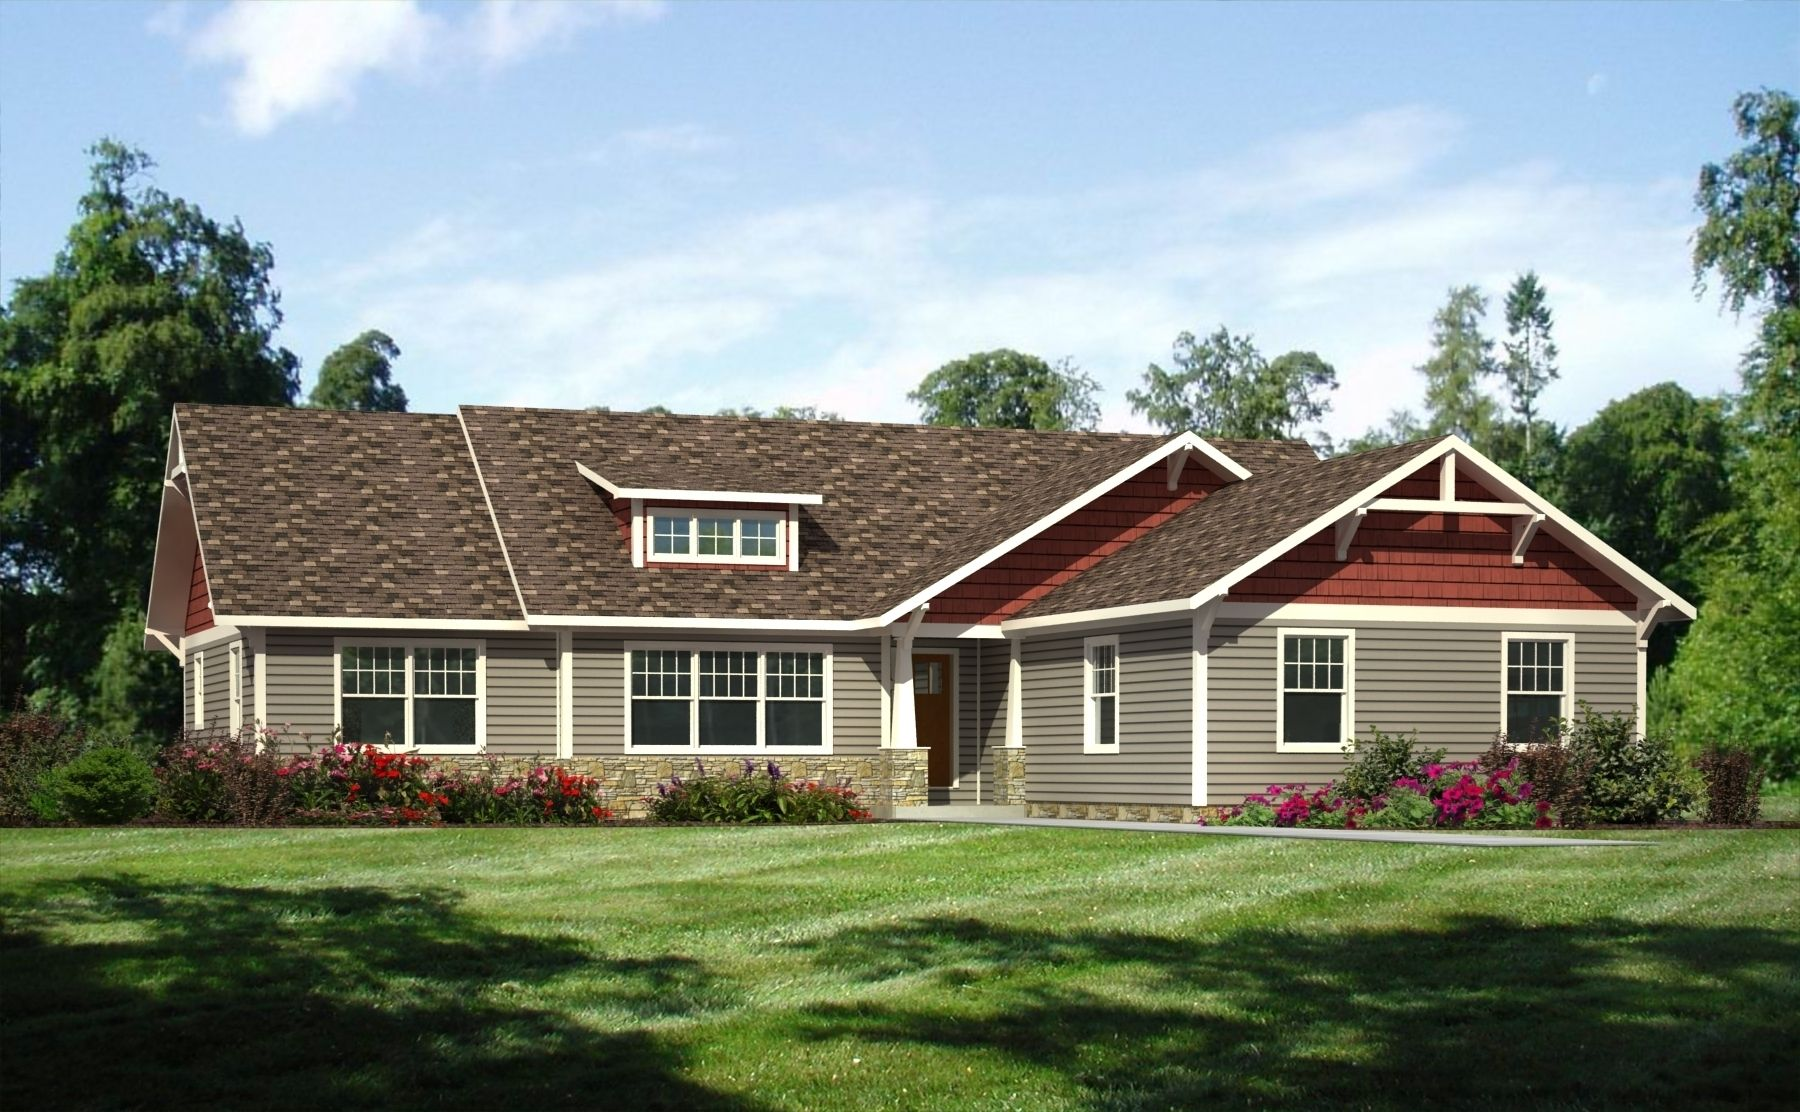 Image Result For Siding Ideas Ranch Style Homes